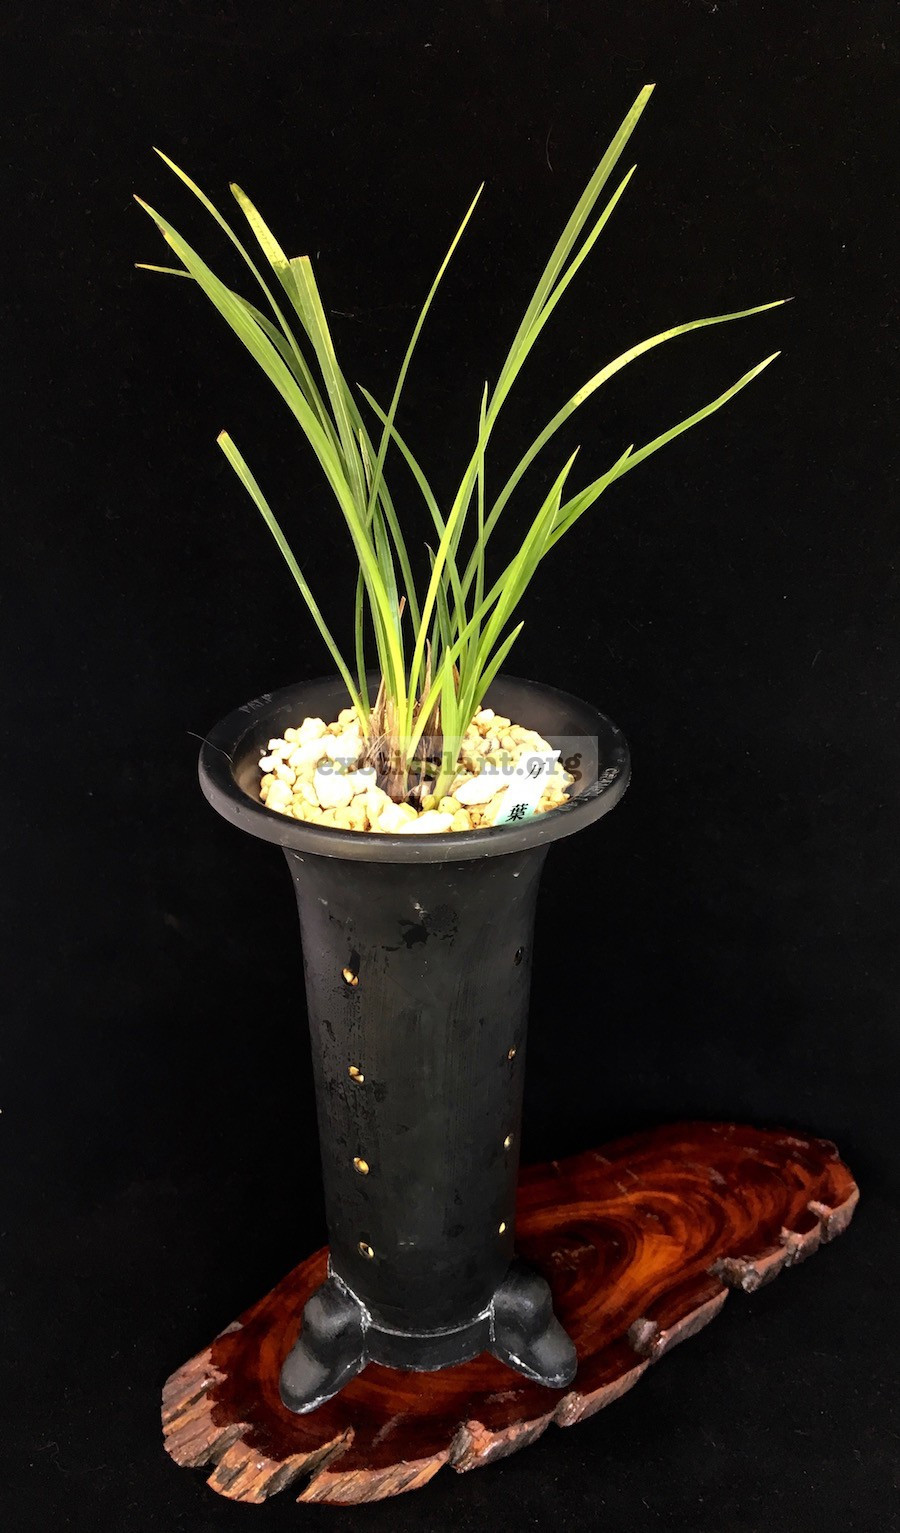 Cymbidium goeringii 'Yume-hikyaku' 夢飛脚 leaves has Dappi variegation(tiger type)